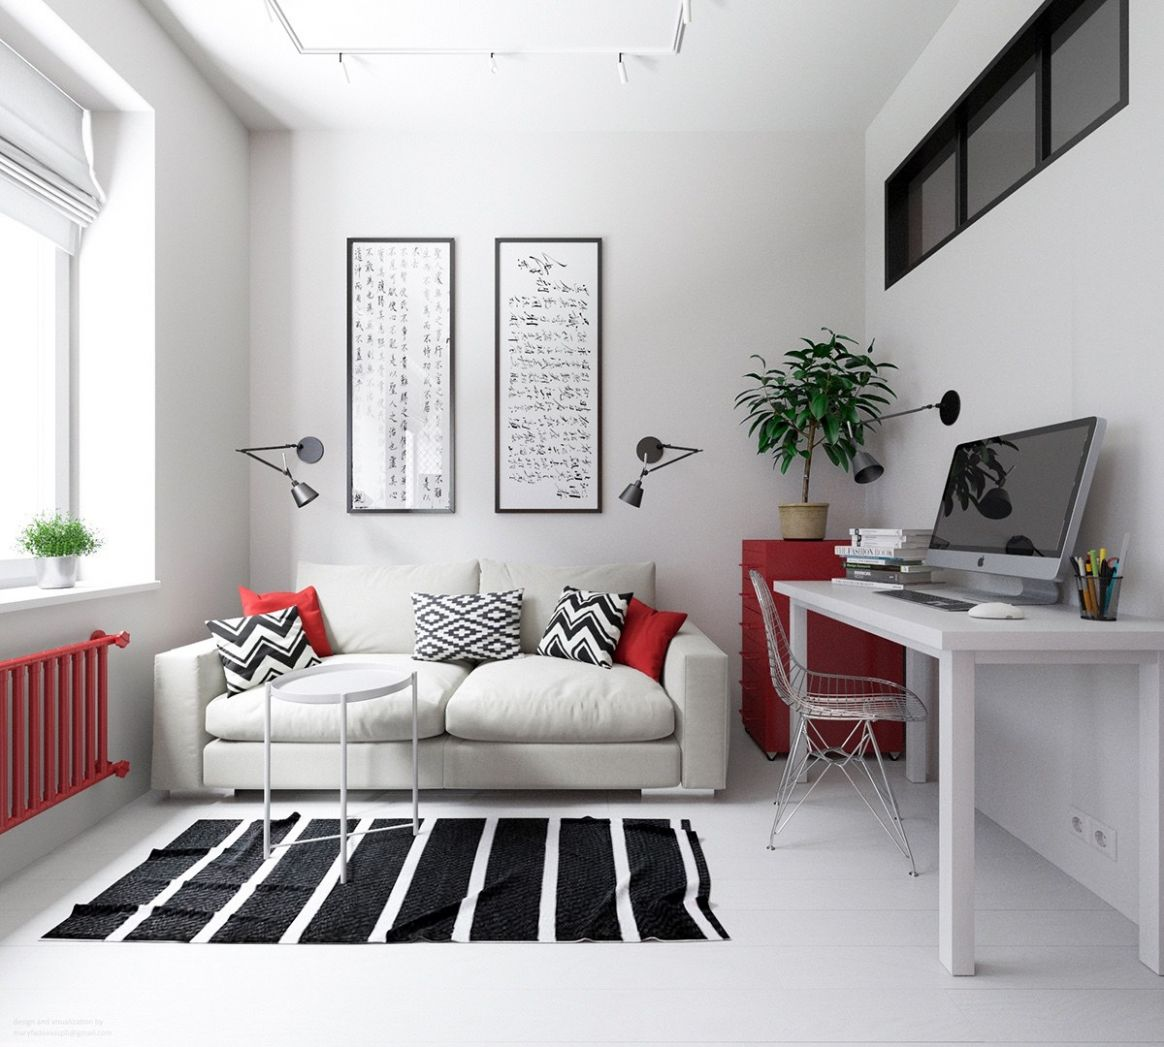 8 Small Apartments That Rock Uncommon Color Schemes [With Floor Plans]